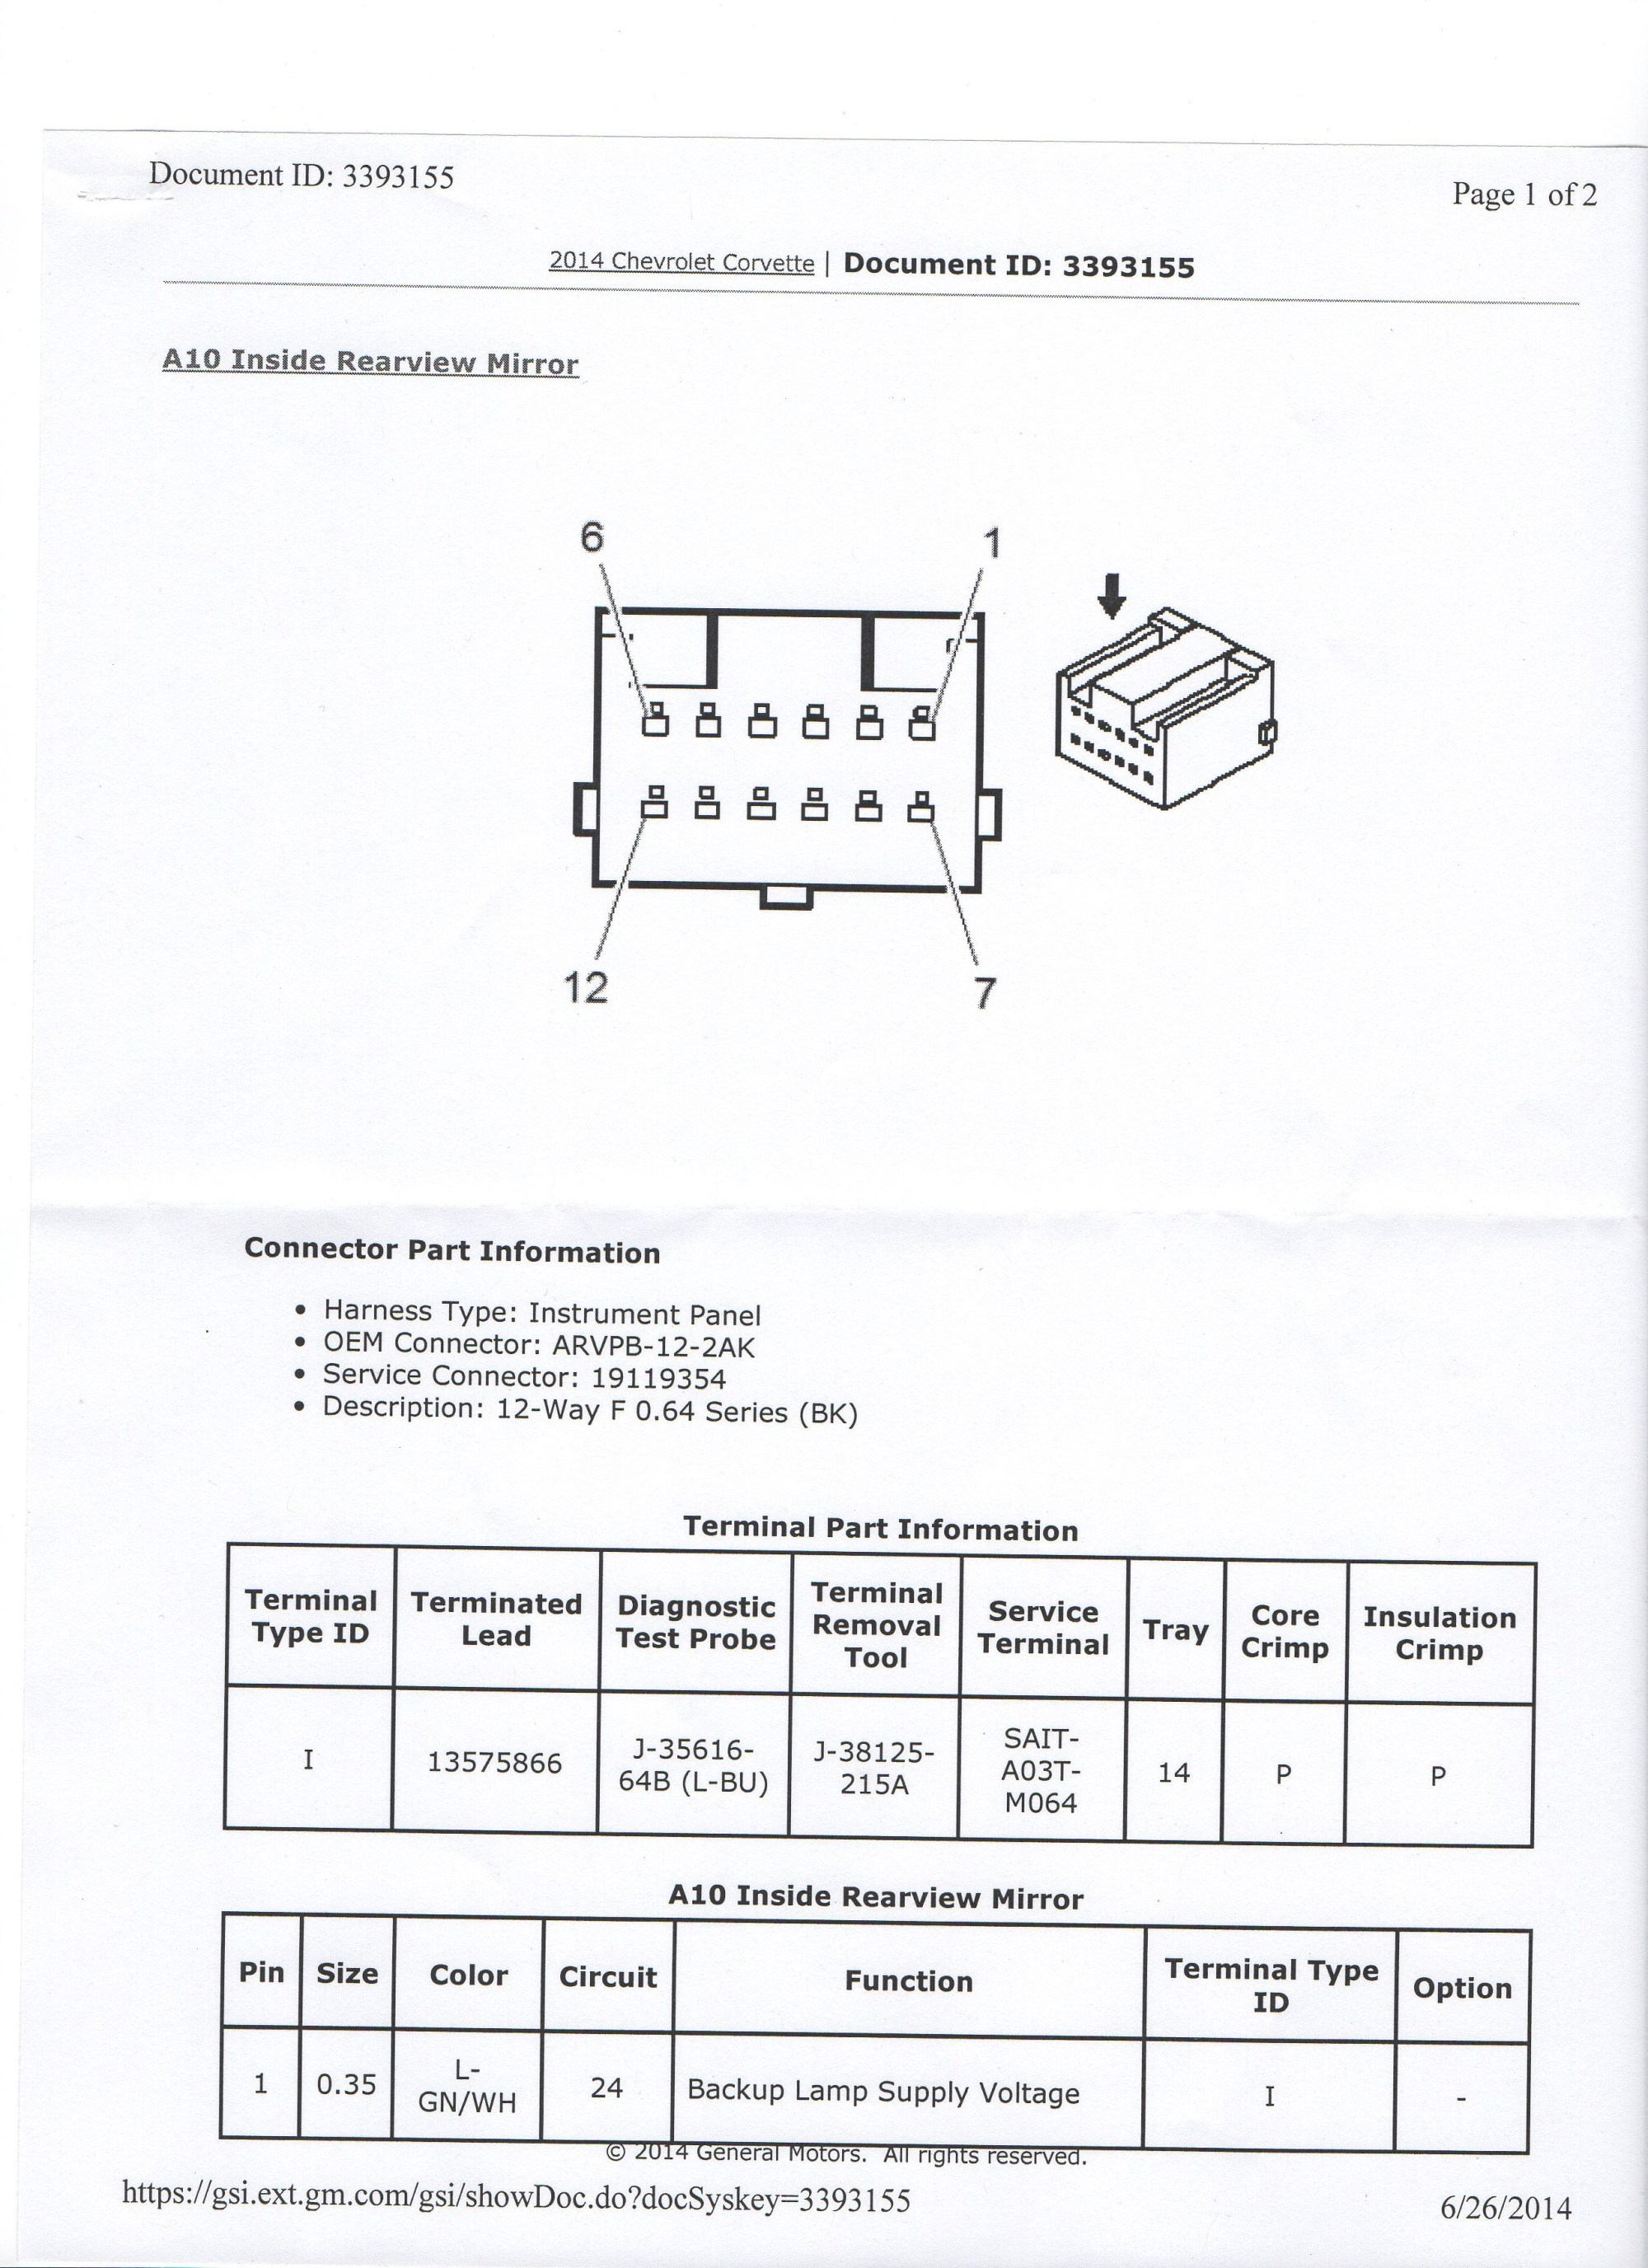 hight resolution of 2012 accent fuse diagram 91117 1r200 wiring diagram inside 2012 accent fuse diagram 91117 1r200